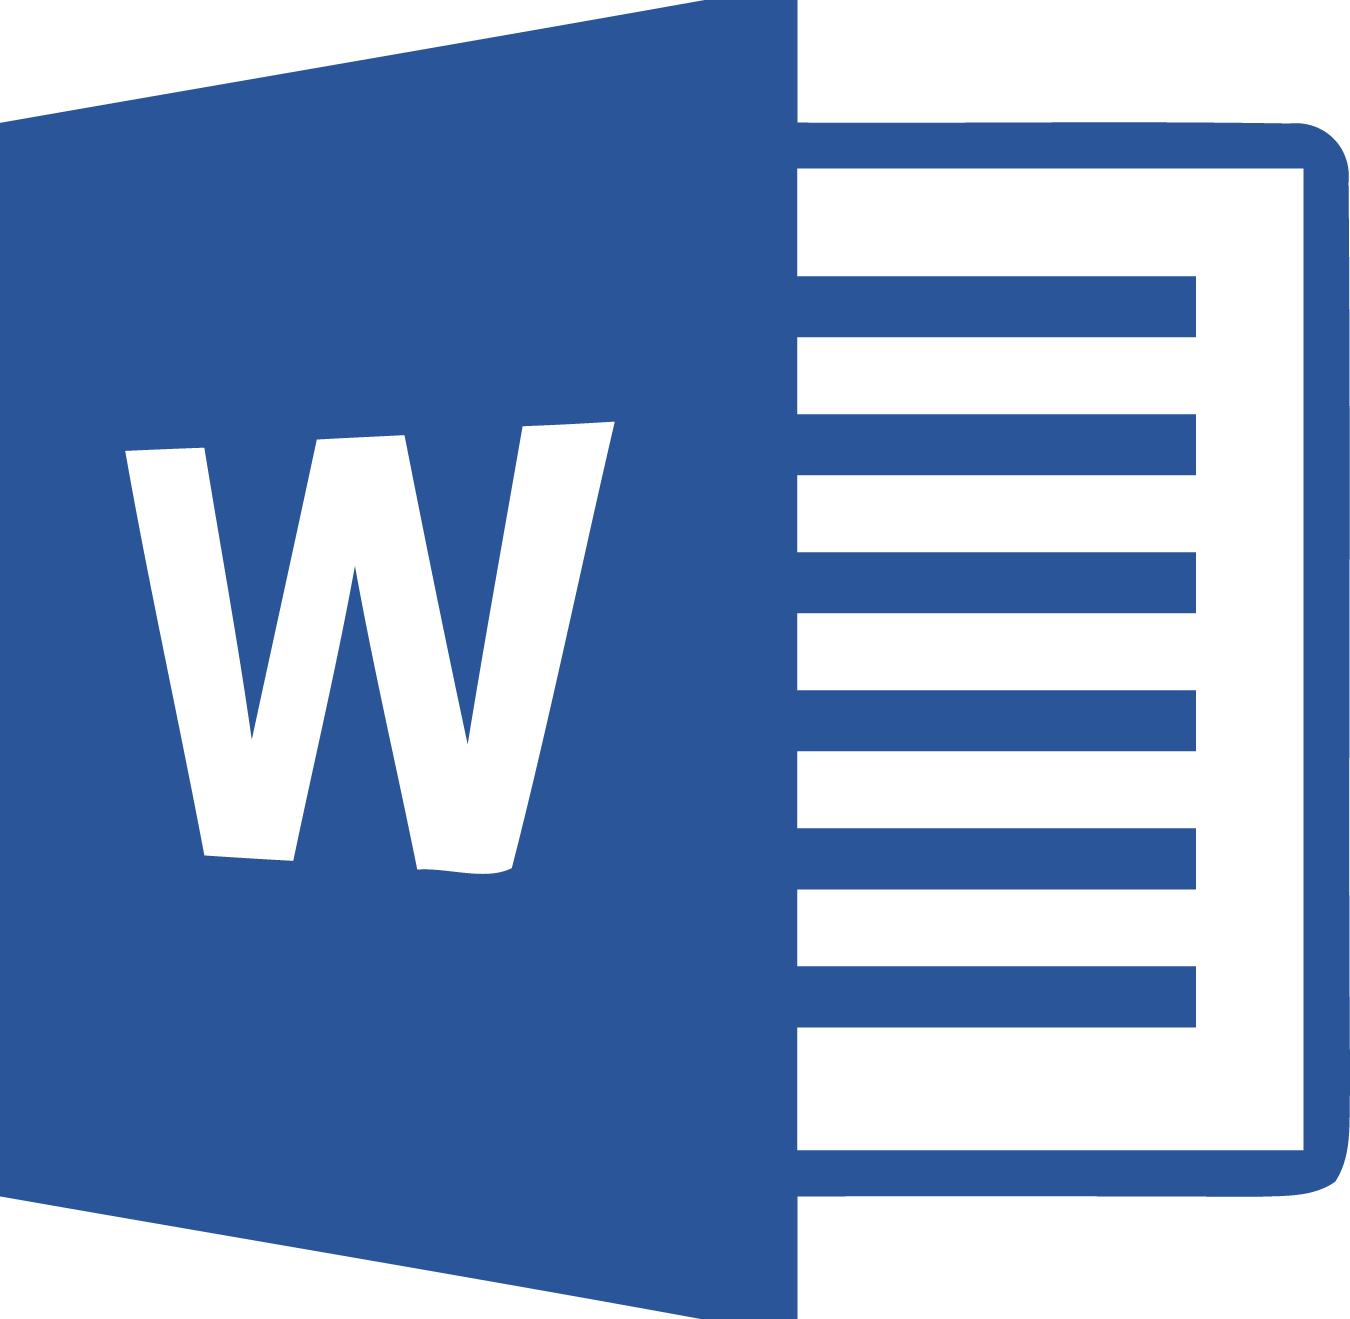 download logo microsoft word vector svg eps png psd ai.